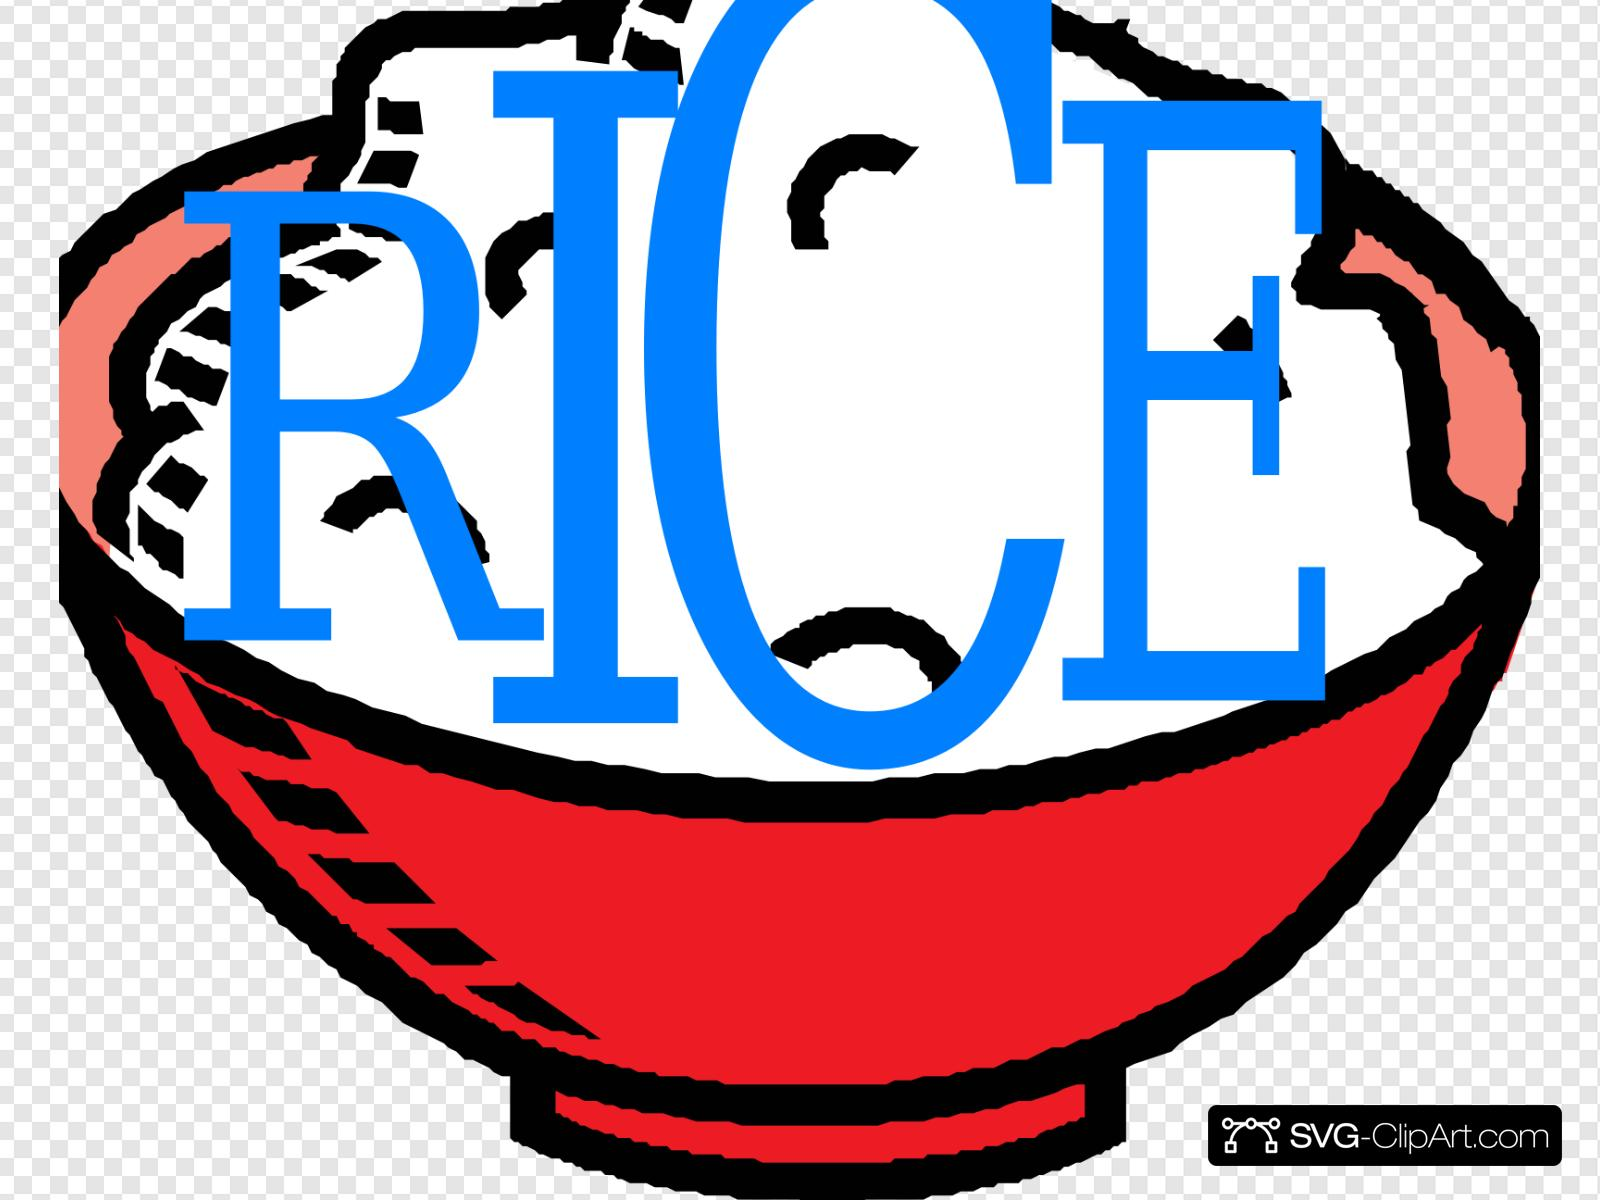 Rice clipart svg. Clip art icon and